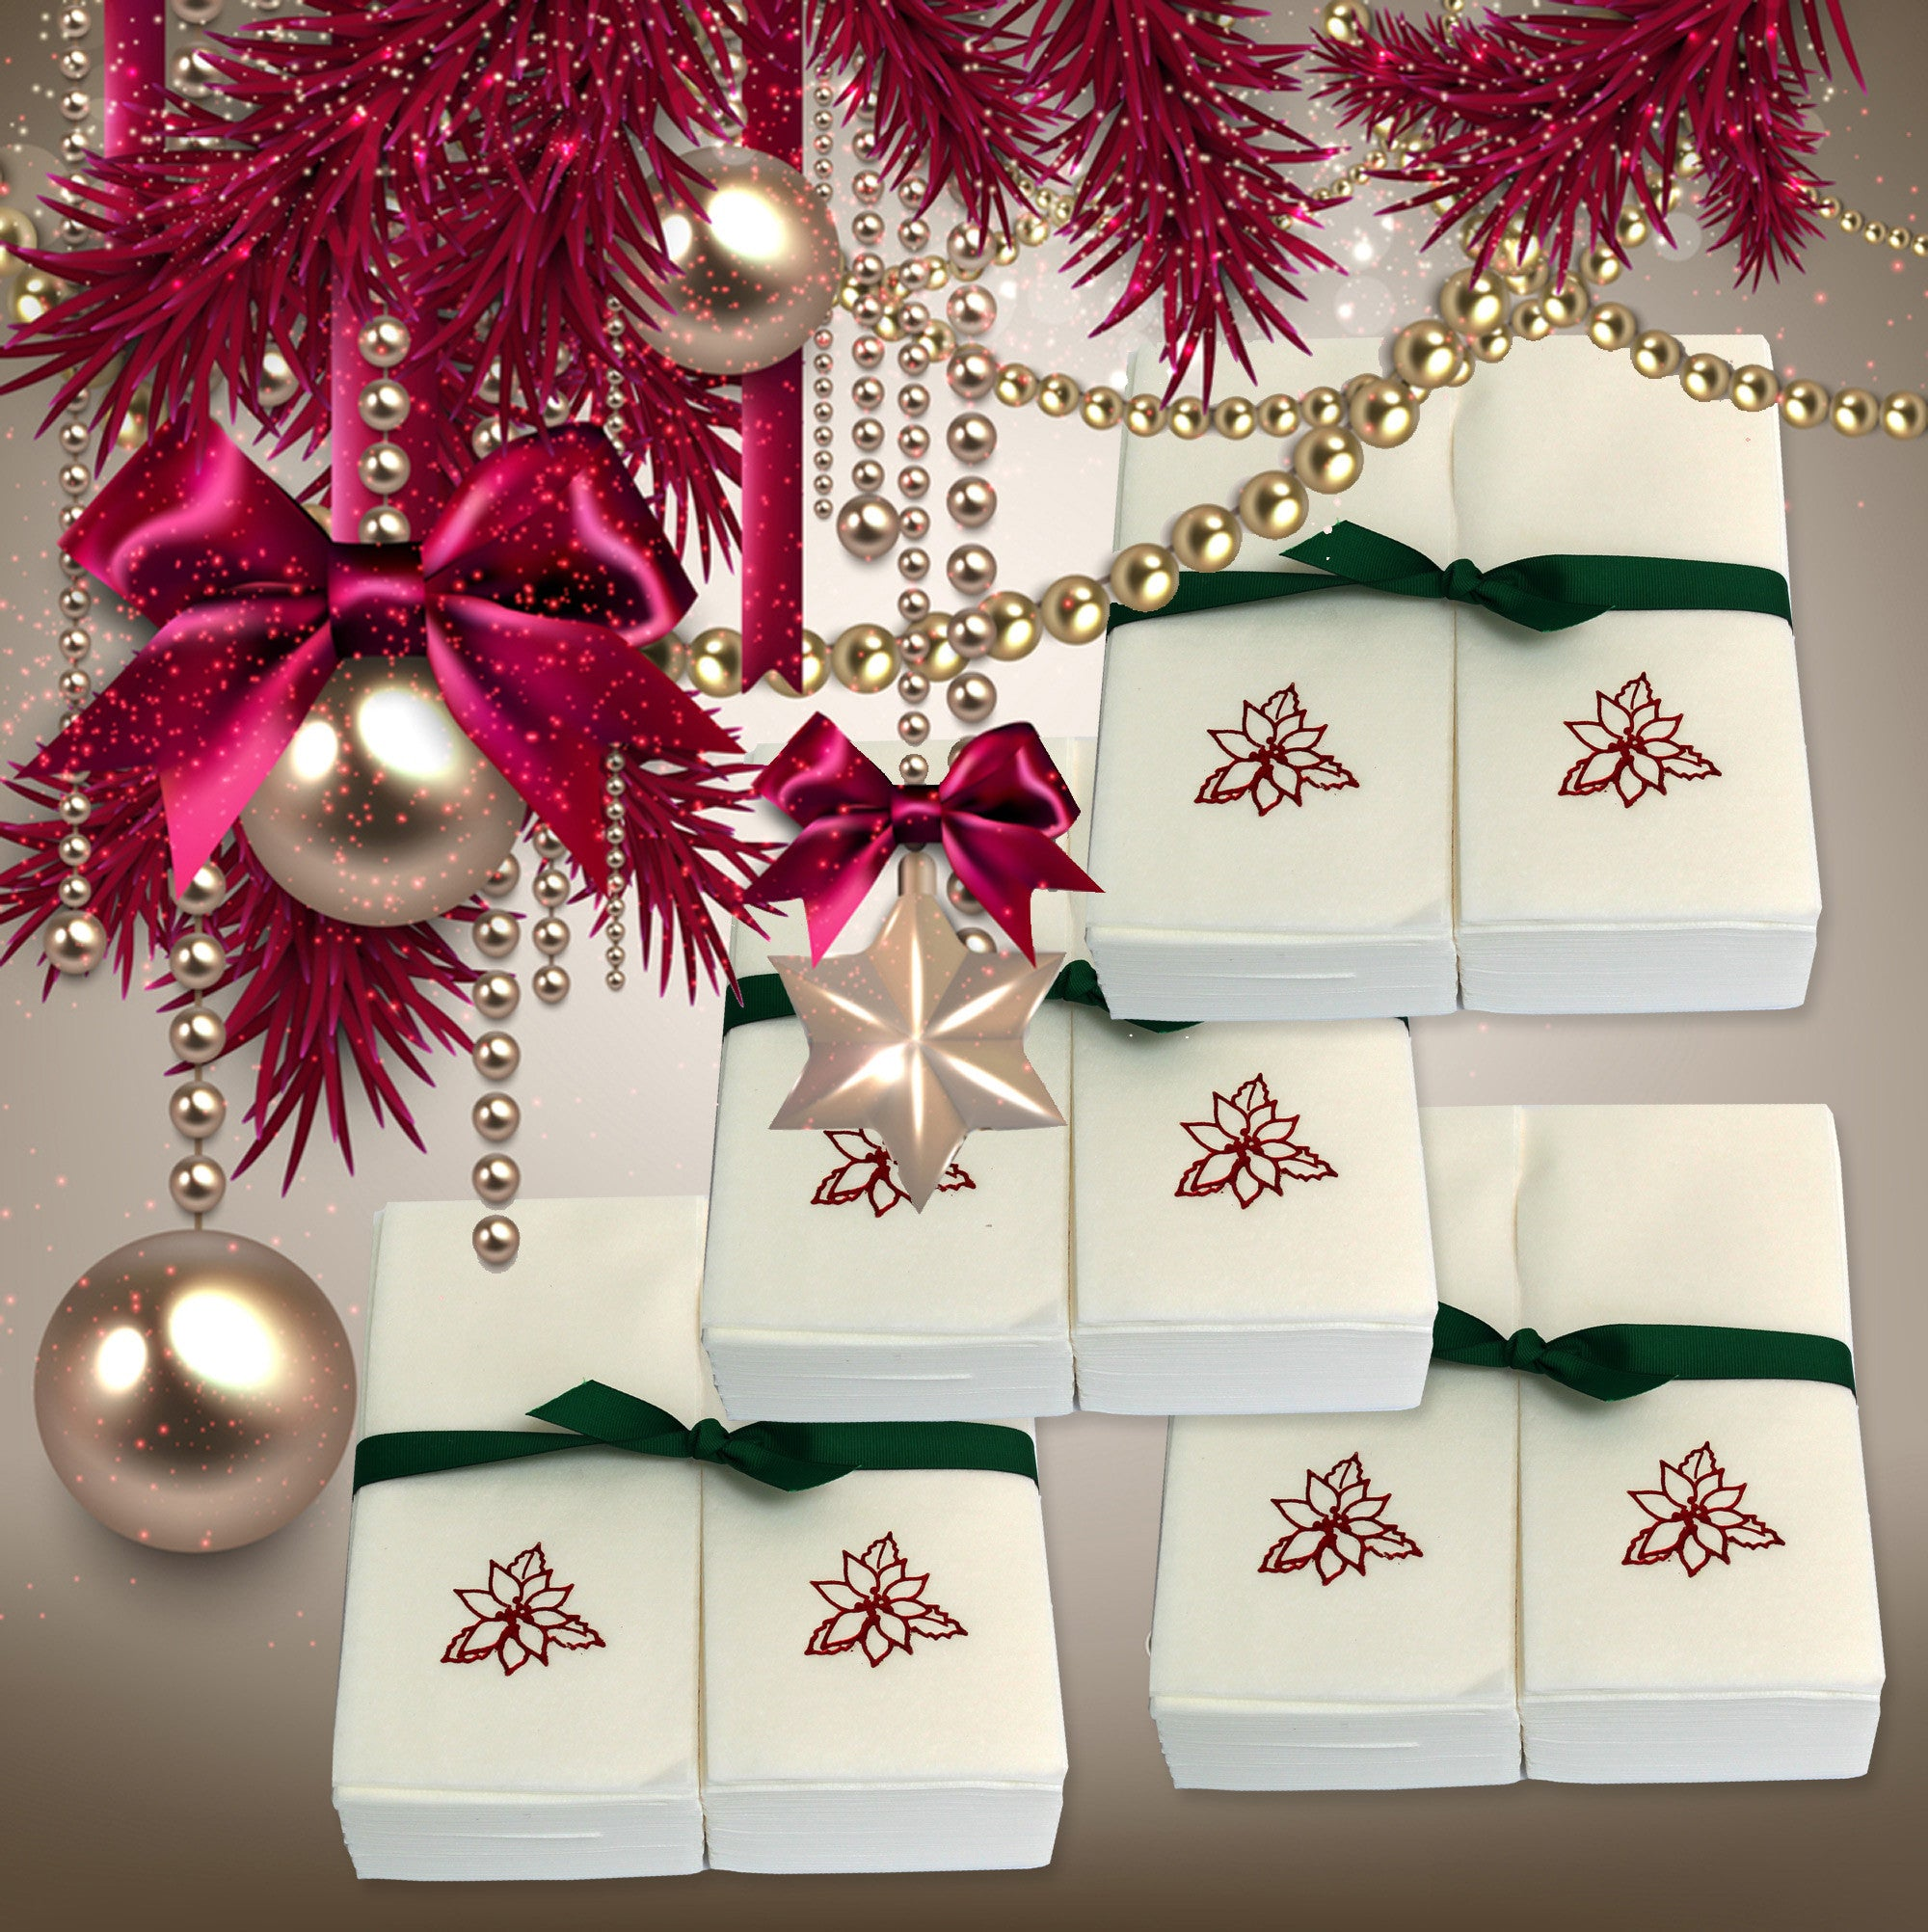 Luxury Christmas Kitchen Towels: Linen Like Disposable Guest Hand Towels Wrapped With A